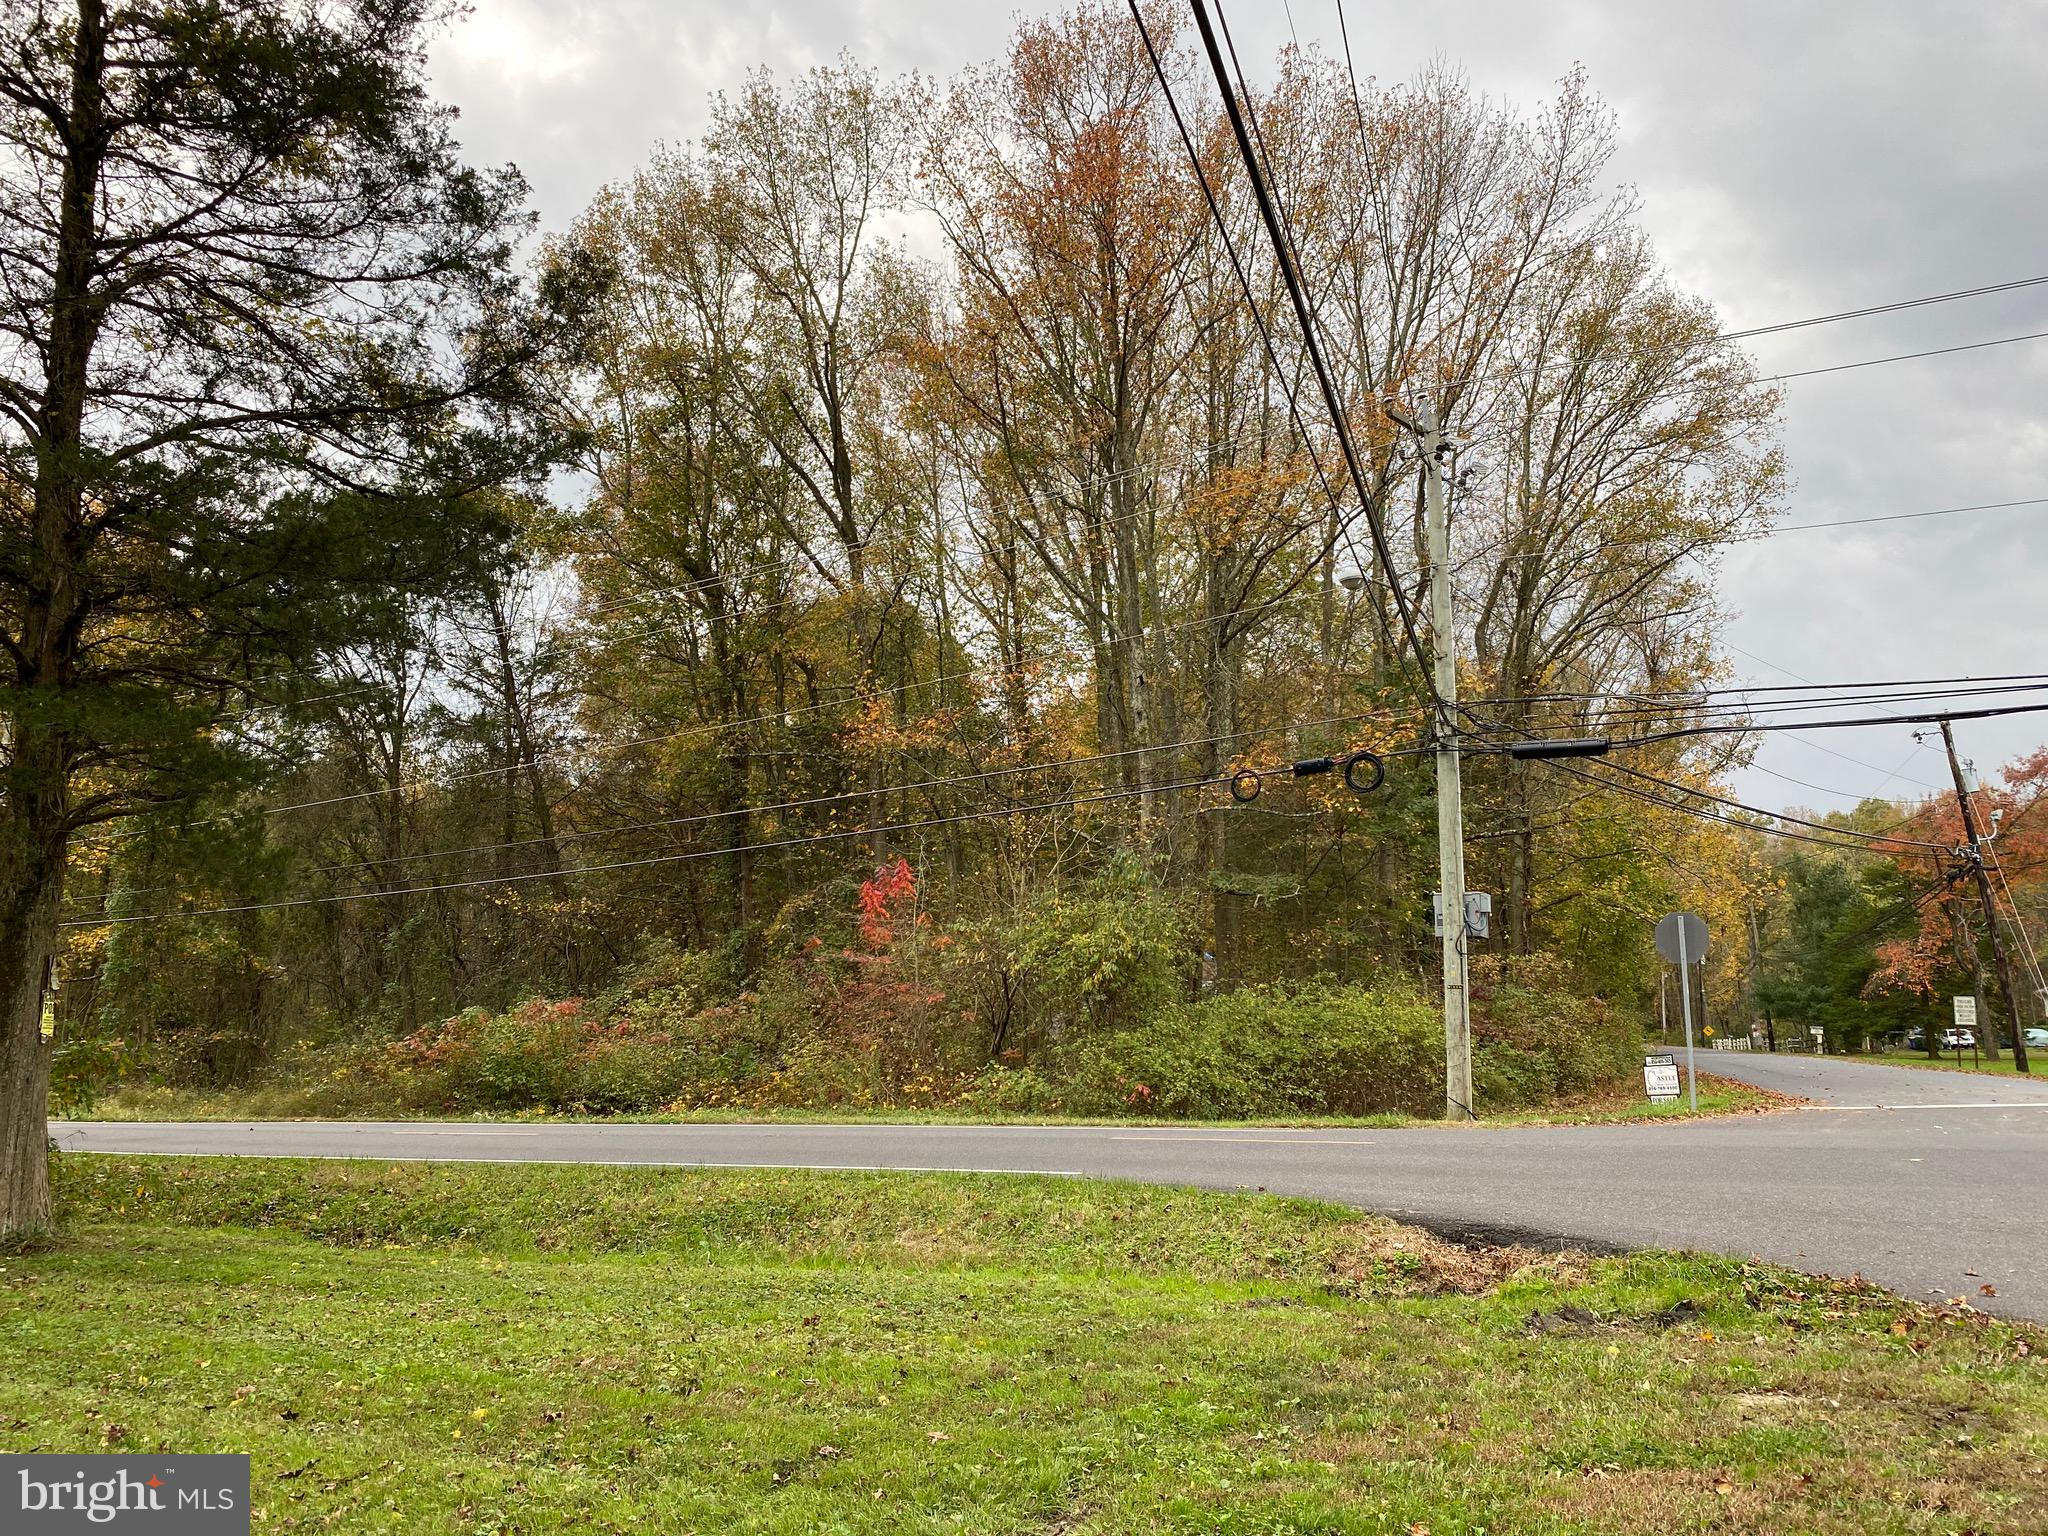 This is a unique opportunity to rebuild this home on its present footprint.  Corner location includes both lots Block 14, lot 15 and Block 14, lot 14 combined to be approximately 2.25 acres.  You will have to check out all requirements and testing on your own.  Buyer should satisfy themselves as to the viability of this lot.   See if this will work for your plans?